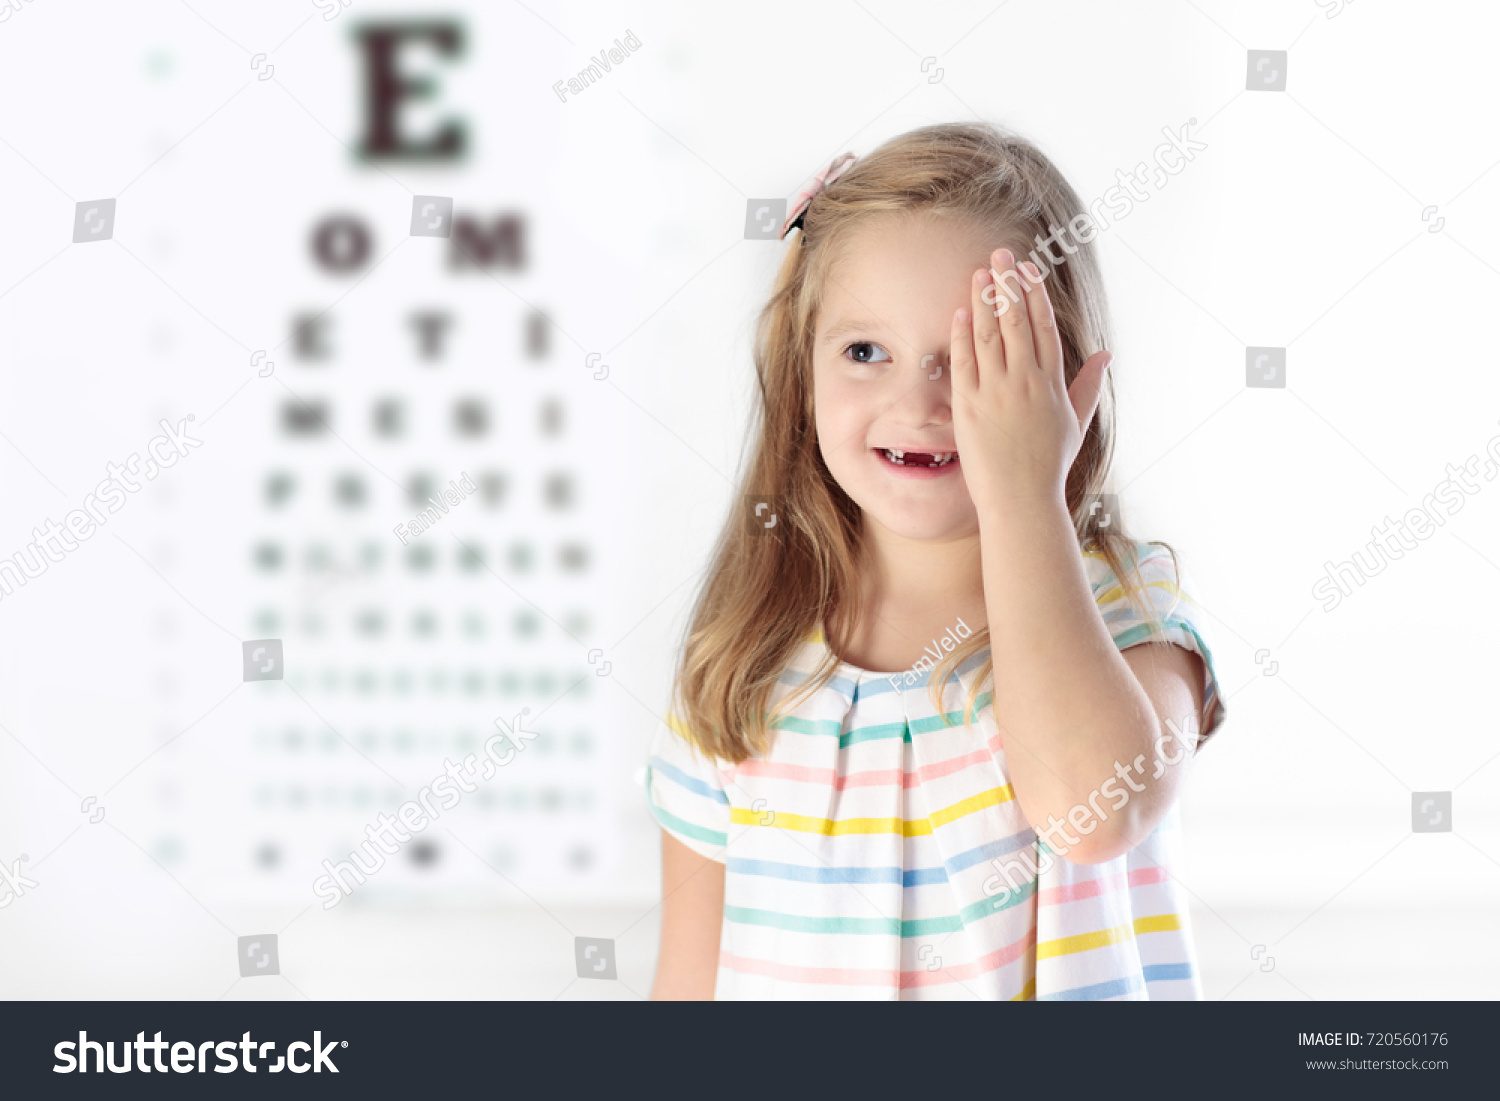 Child eye sight test little kid stock photo 720560176 shutterstock child at eye sight test little kid selecting glasses at optician store eyesight measurement geenschuldenfo Images